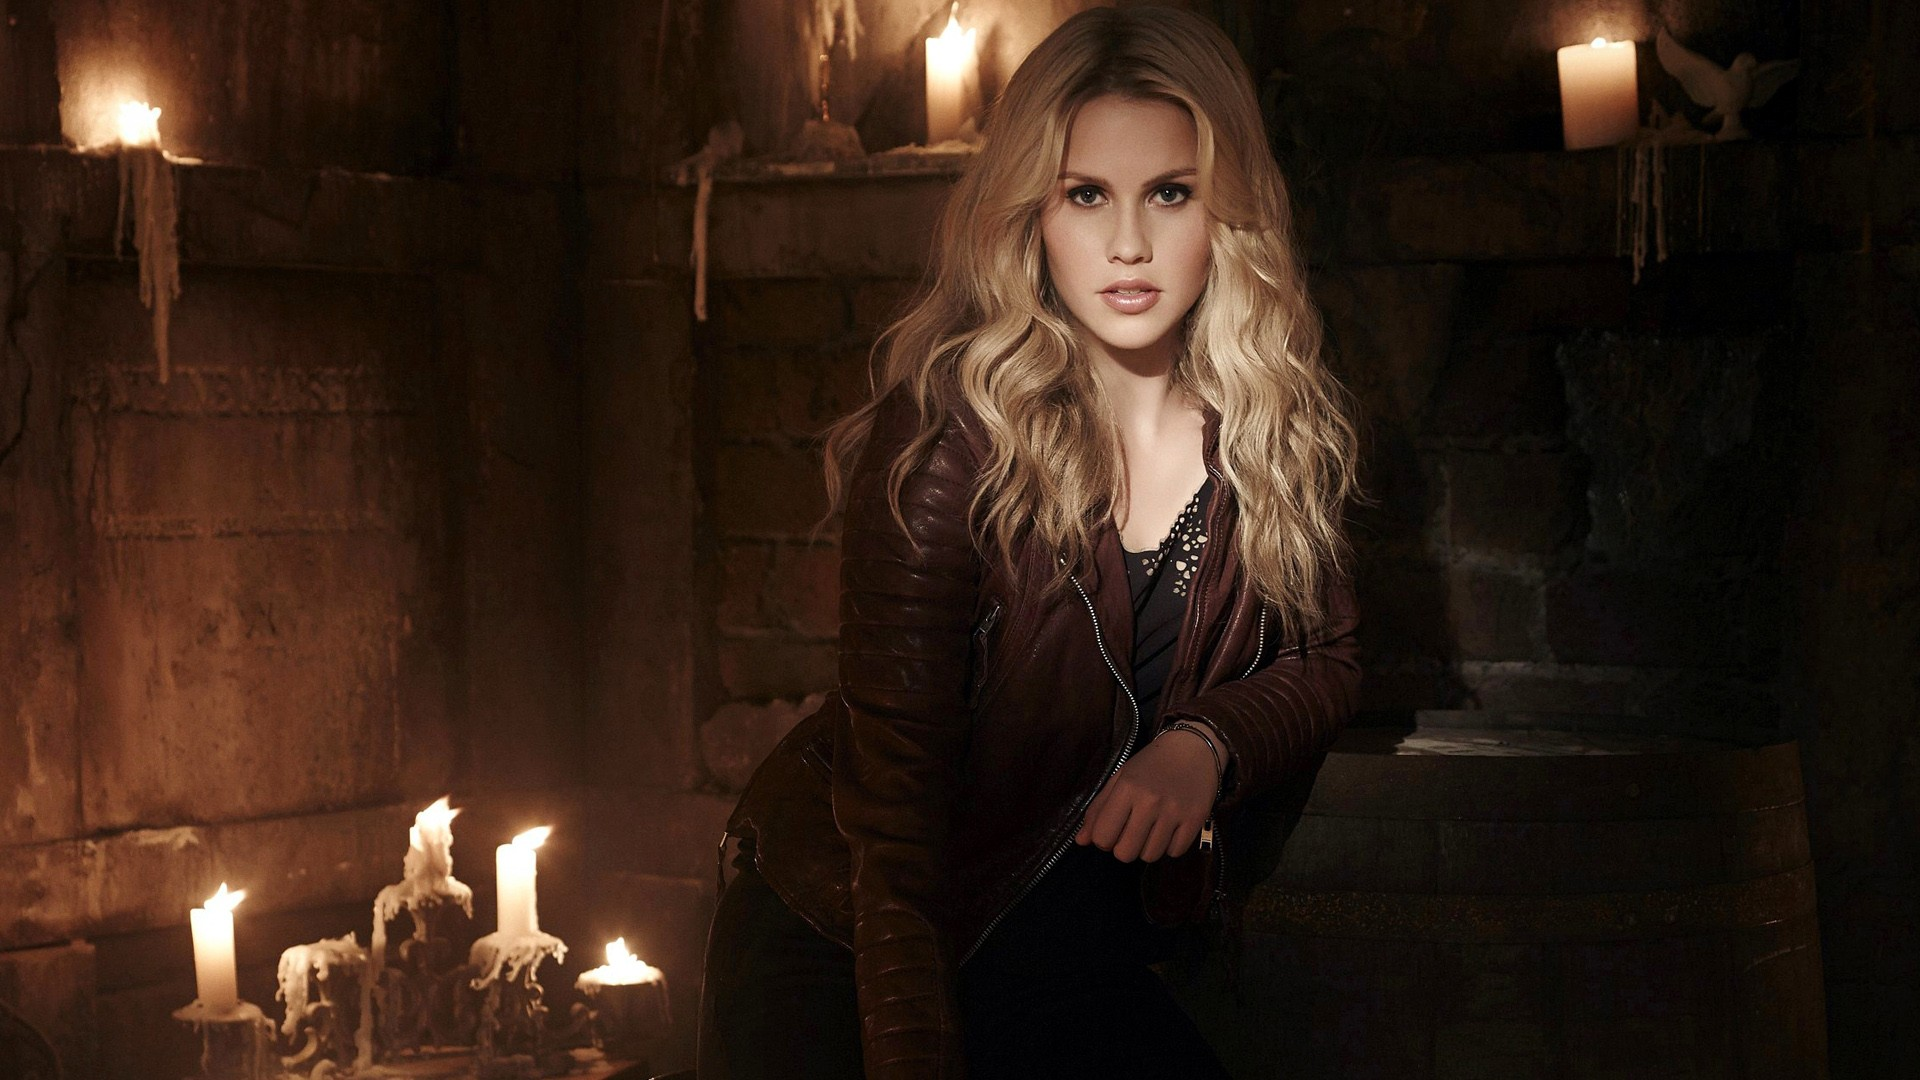 Latest Sports Cars 2014 Wallpaper Claire Holt Wallpapers Hd Wallpapers Id 13923